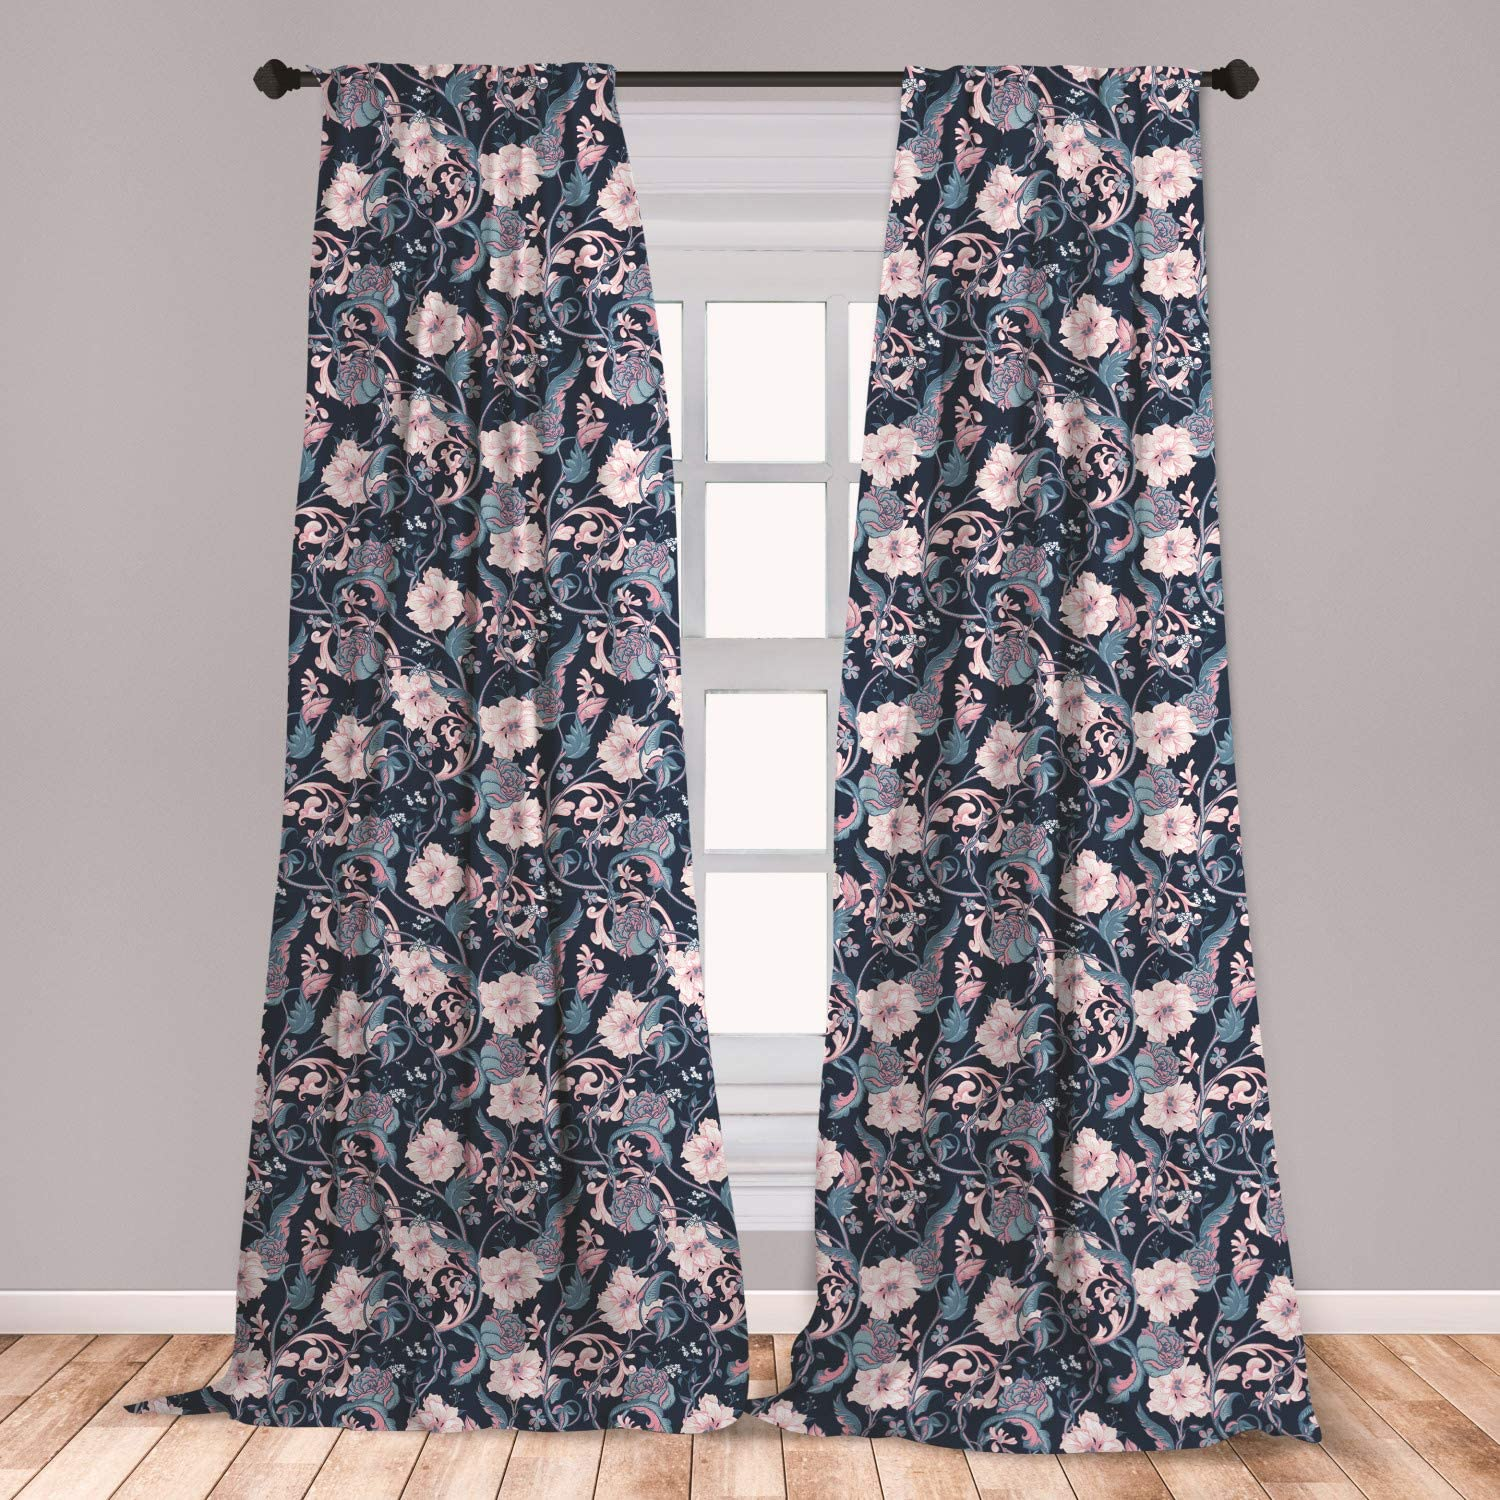 """Ambesonne Victorian Curtains, Vintage Romantic Rose and Magnolia Bouquet with Twigs on Dark Backdrop, Window Treatments 2 Panel Set for Living Room Bedroom Decor, 56"""" x 95"""", Dark Blue"""